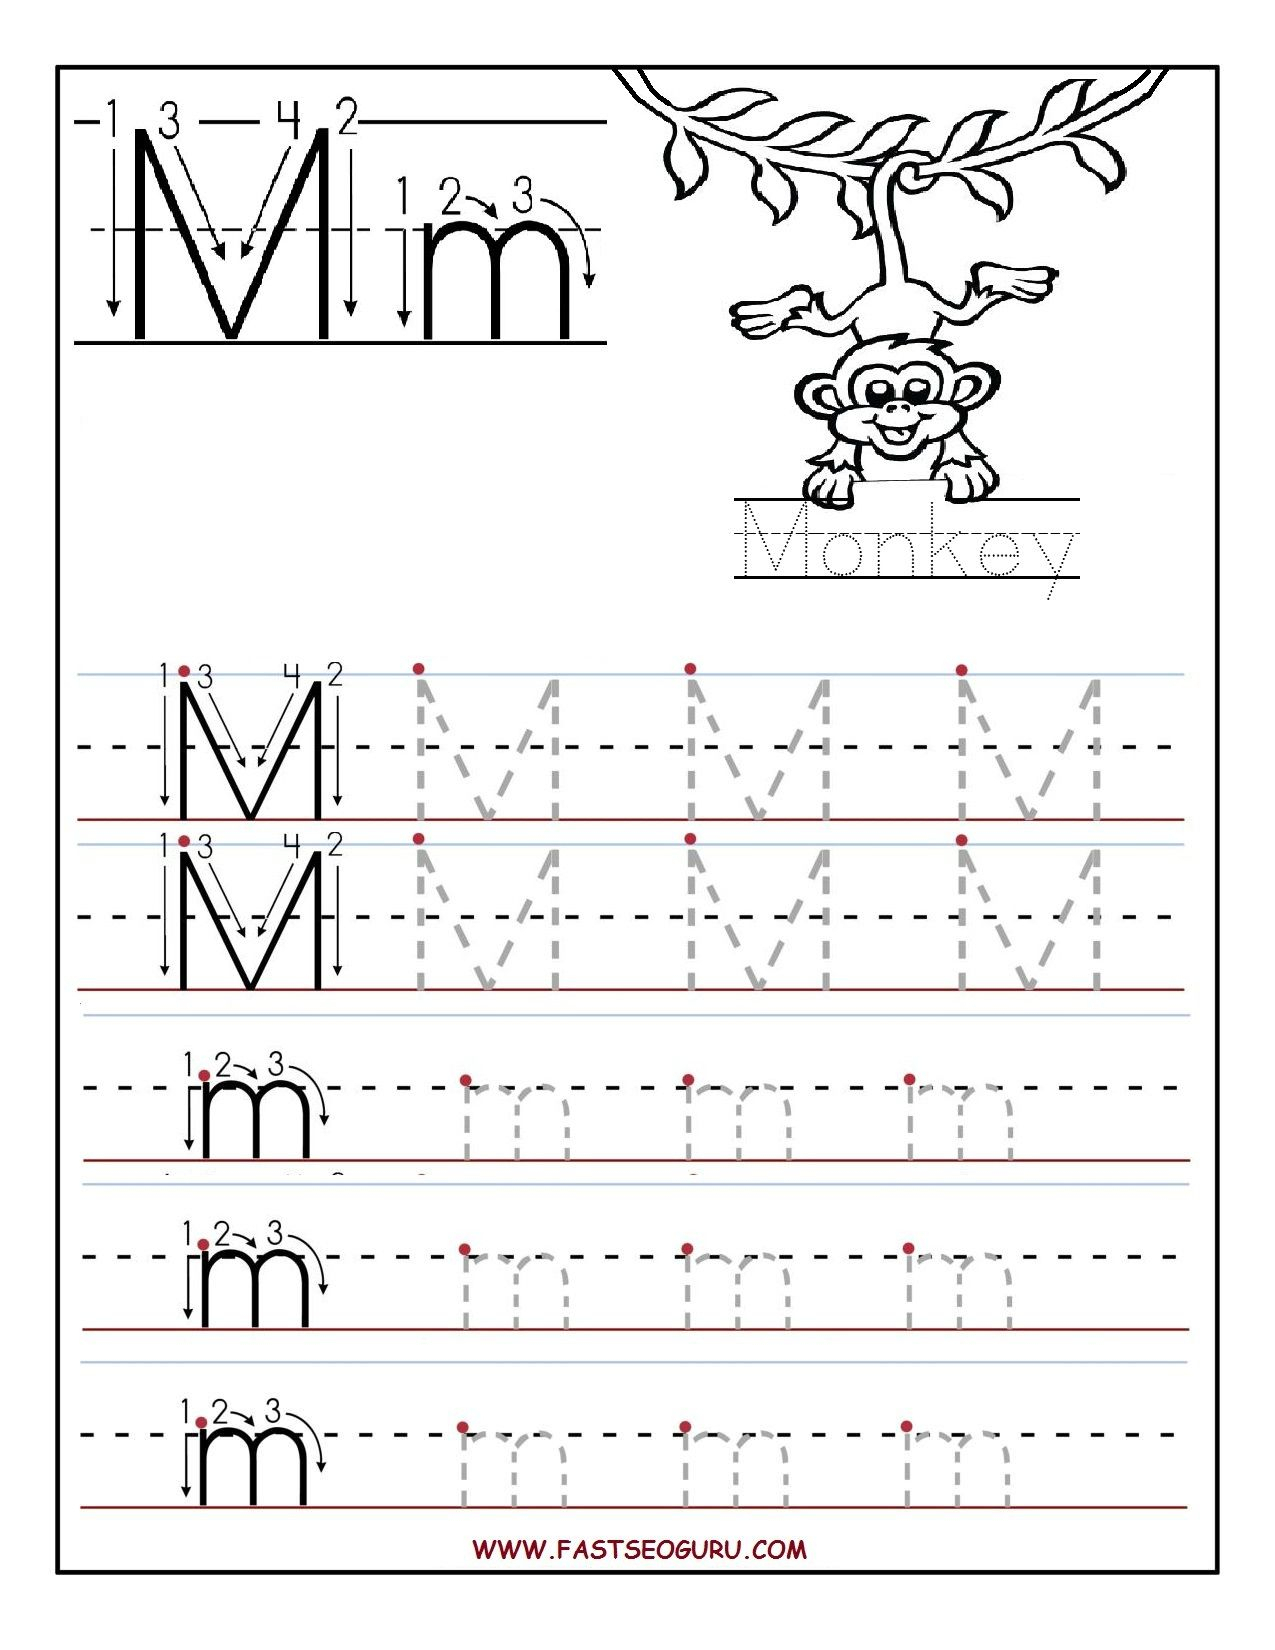 Printable Letter M Tracing Worksheets For Preschool for Letter M Worksheets For Pre K